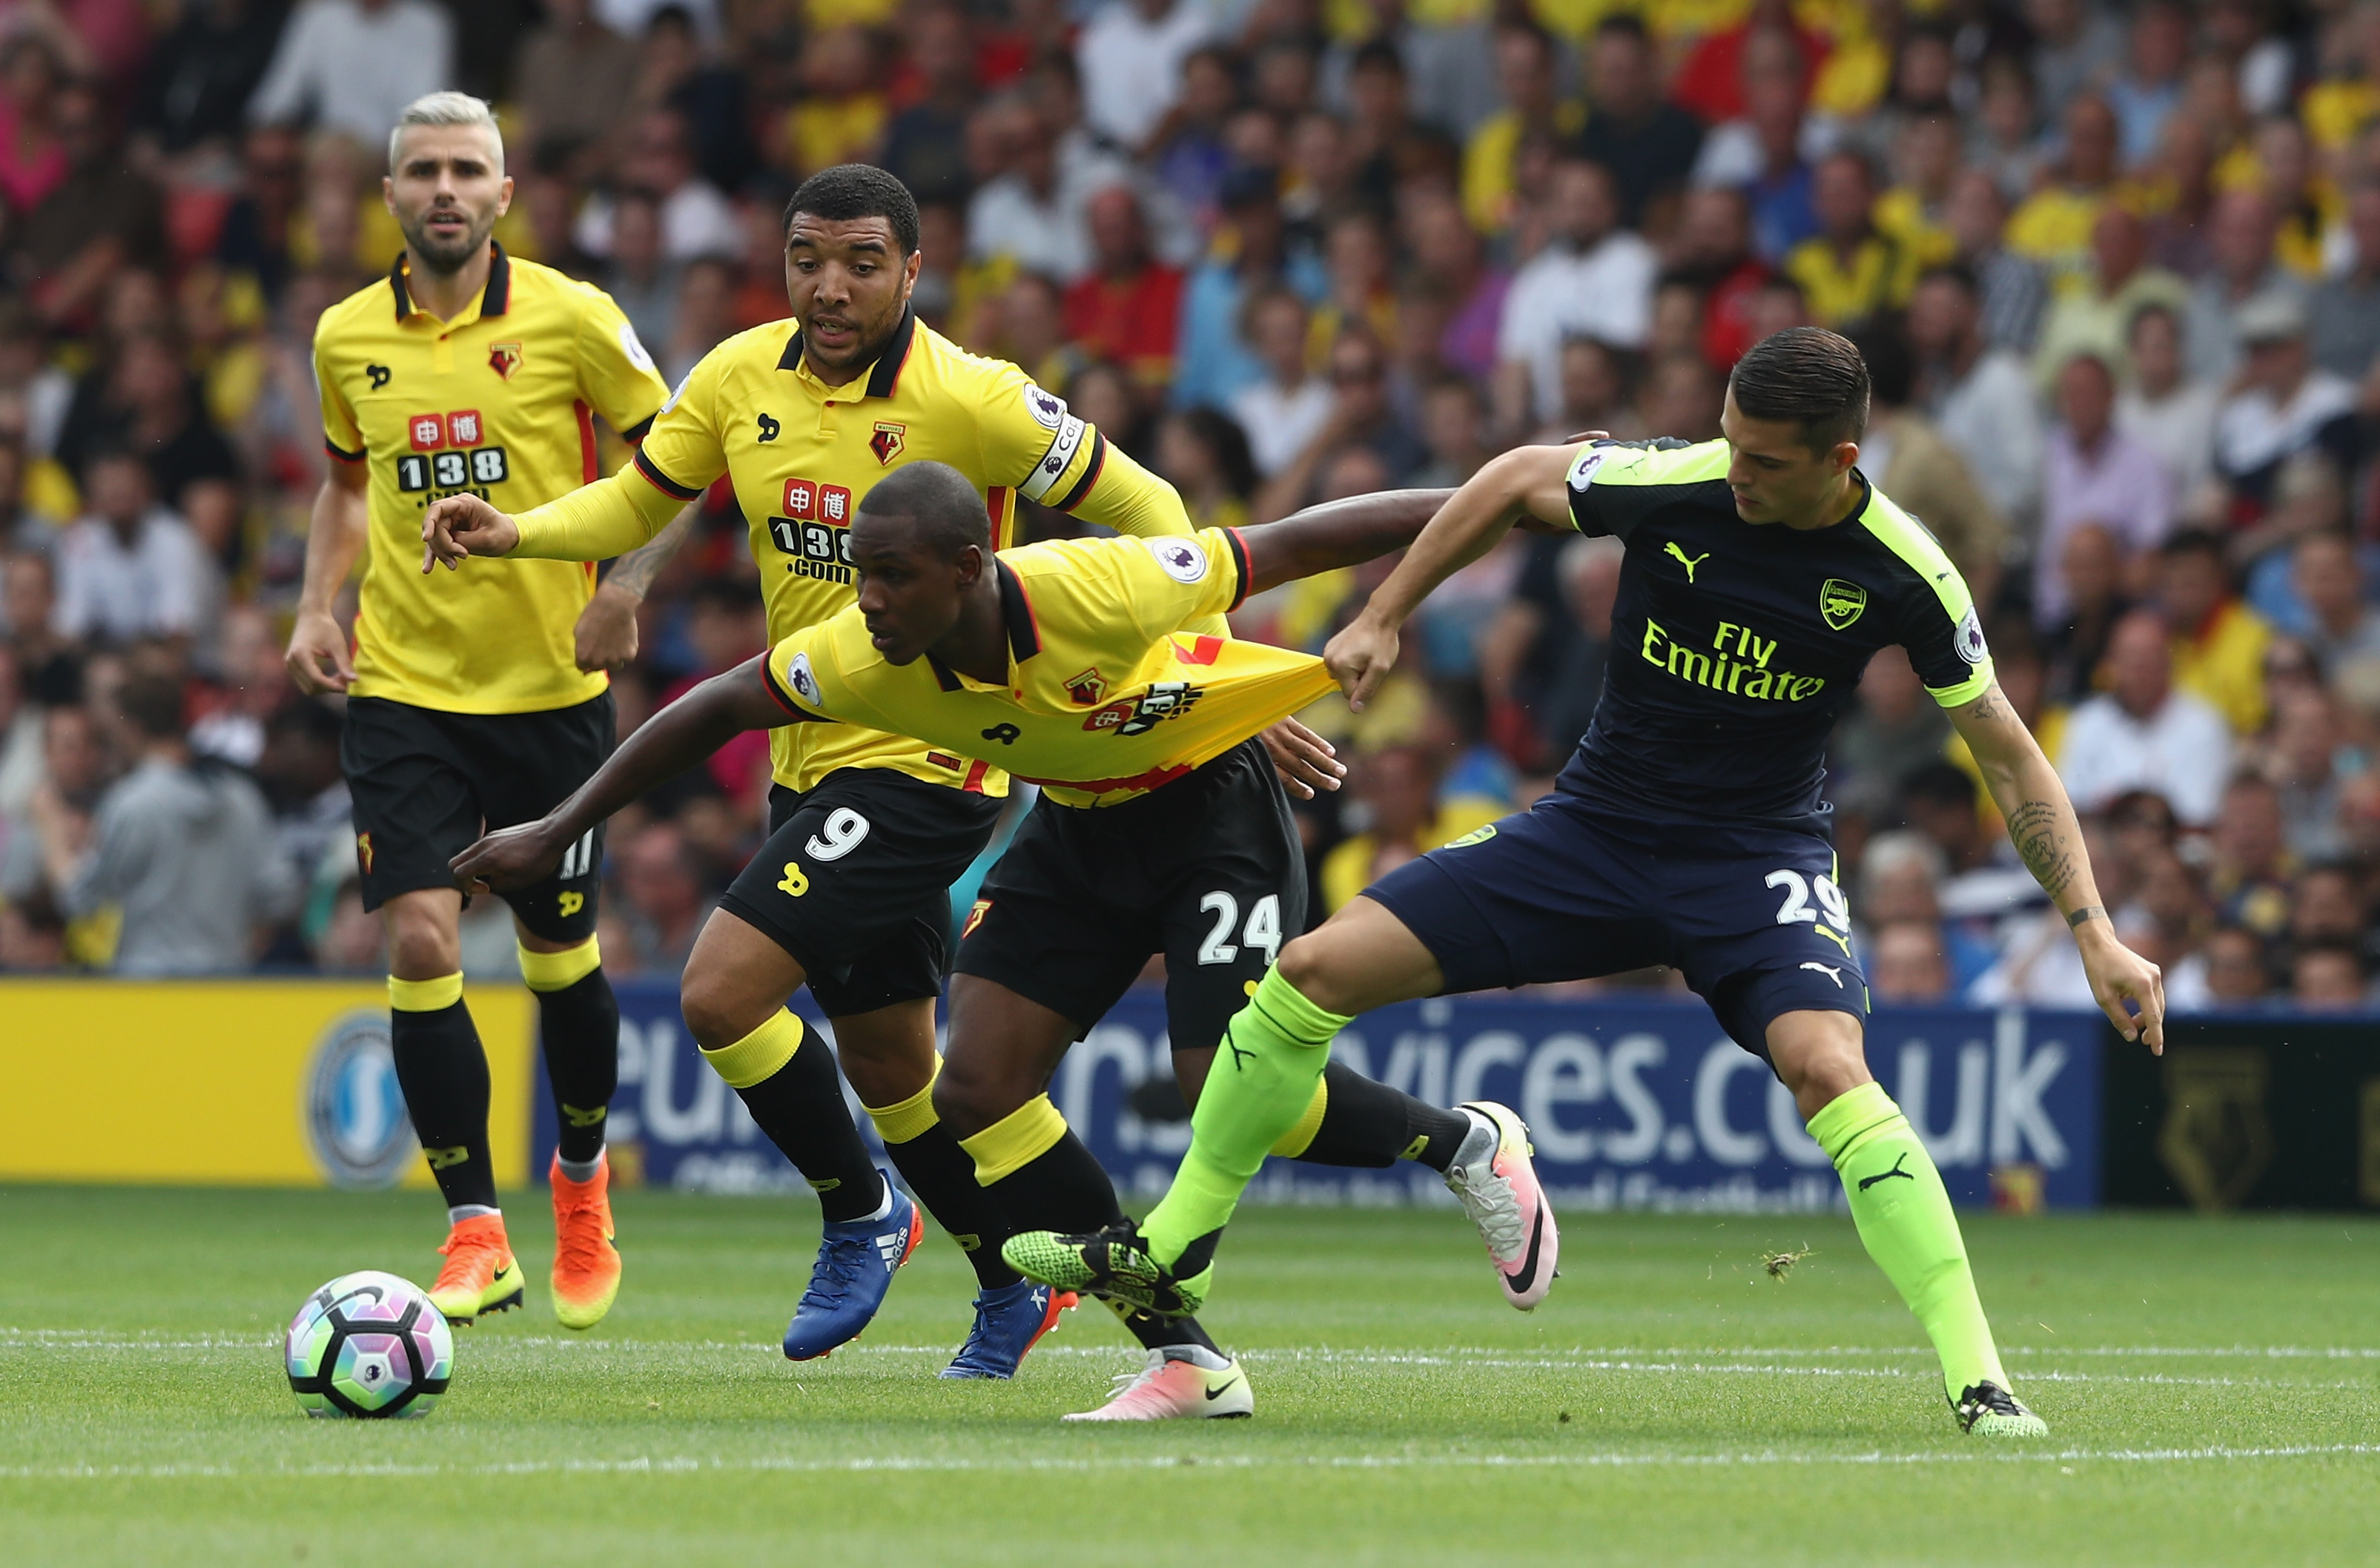 Granit Xhaka isn't the player Wenger seems to think he is